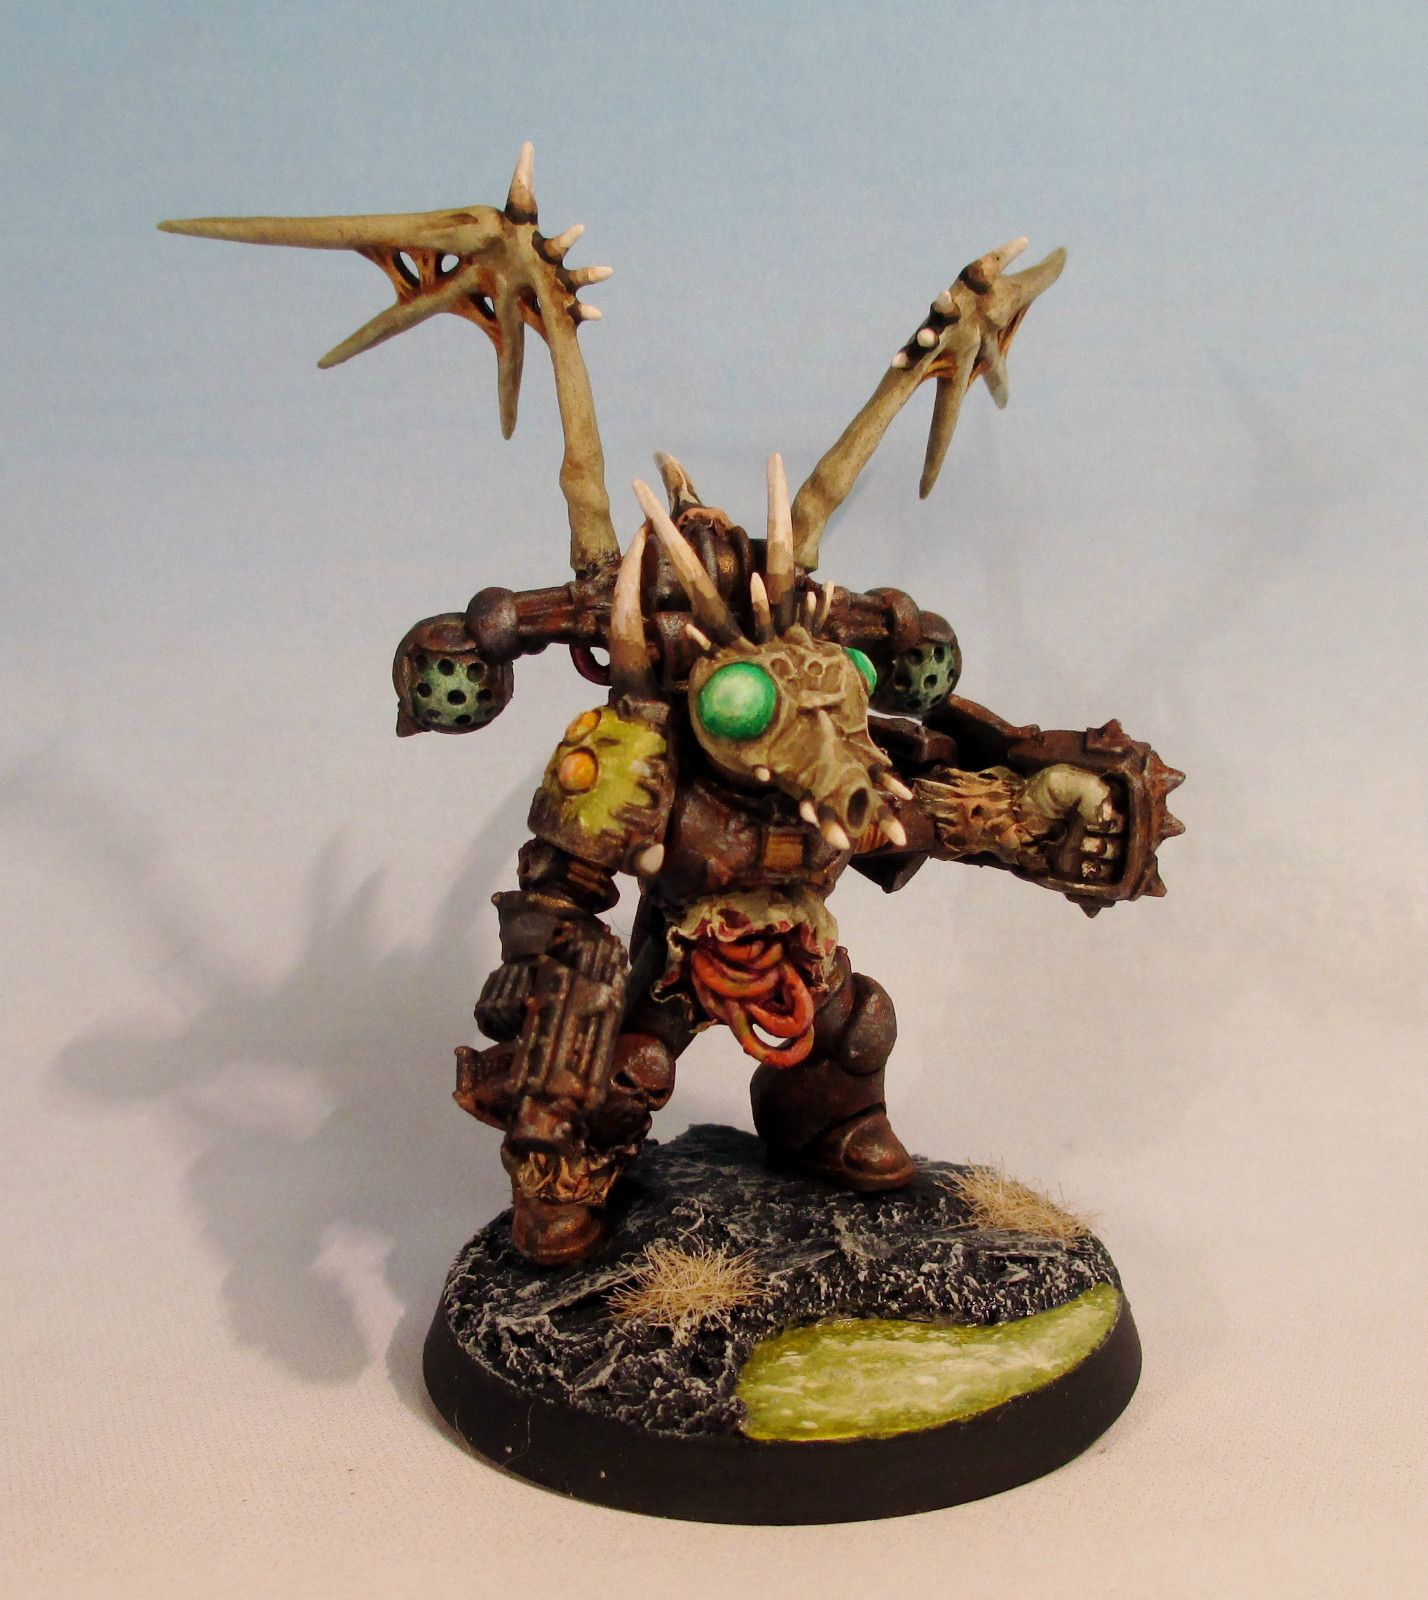 Warhammer 40K Chaos Space Marine Painted Nurgle Lord